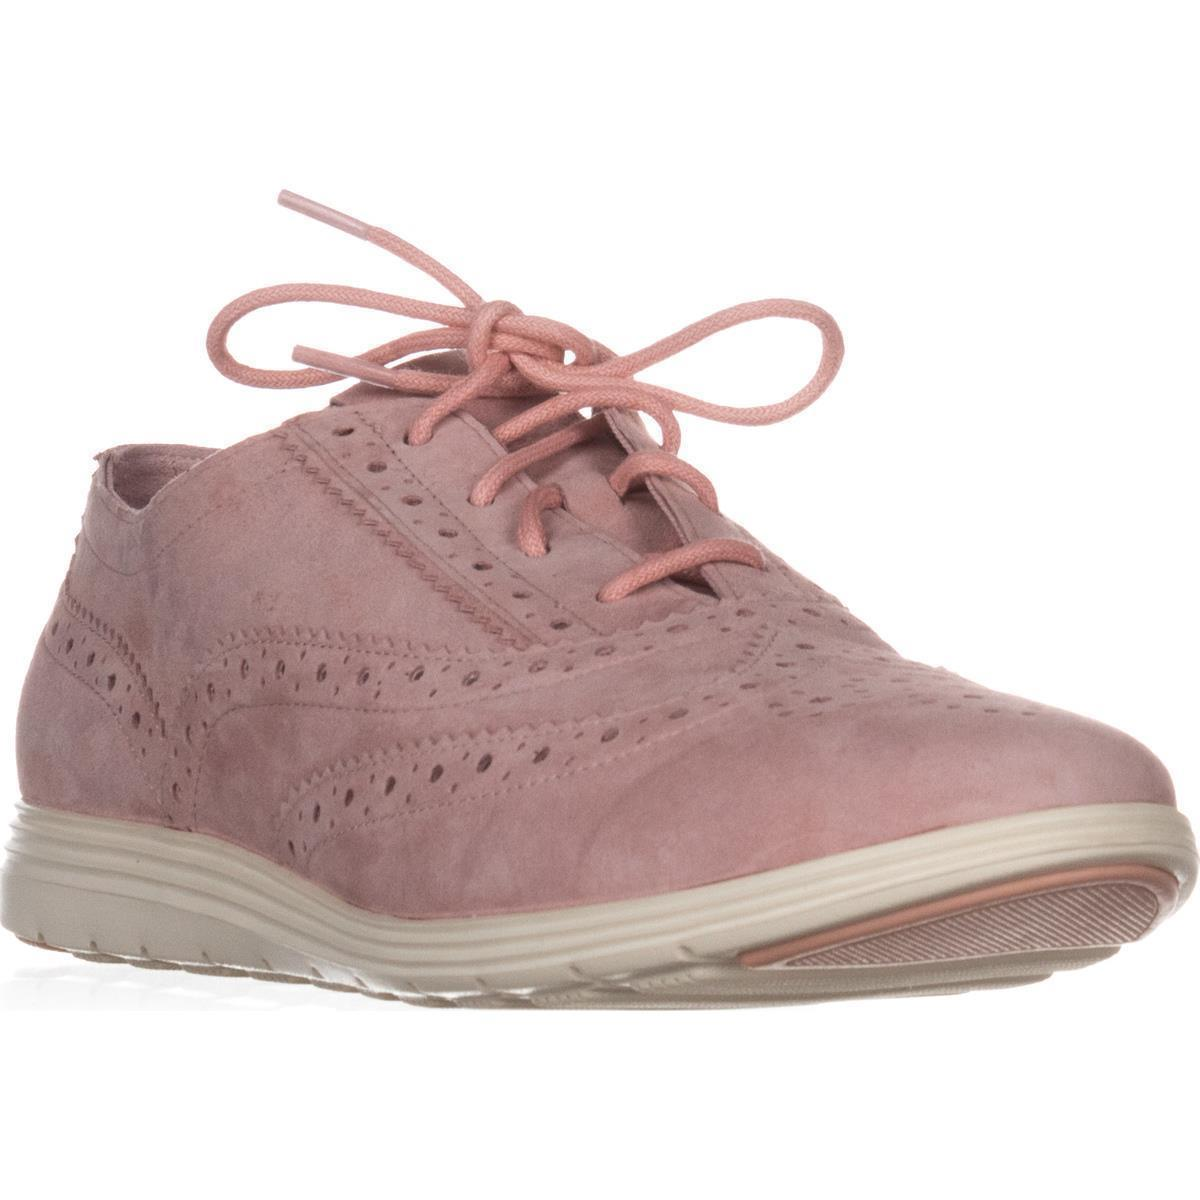 Womens Cole Haan Grand Tour Pink/Ivory Oxford Sneakers, Silver Pink/Ivory Tour 076321